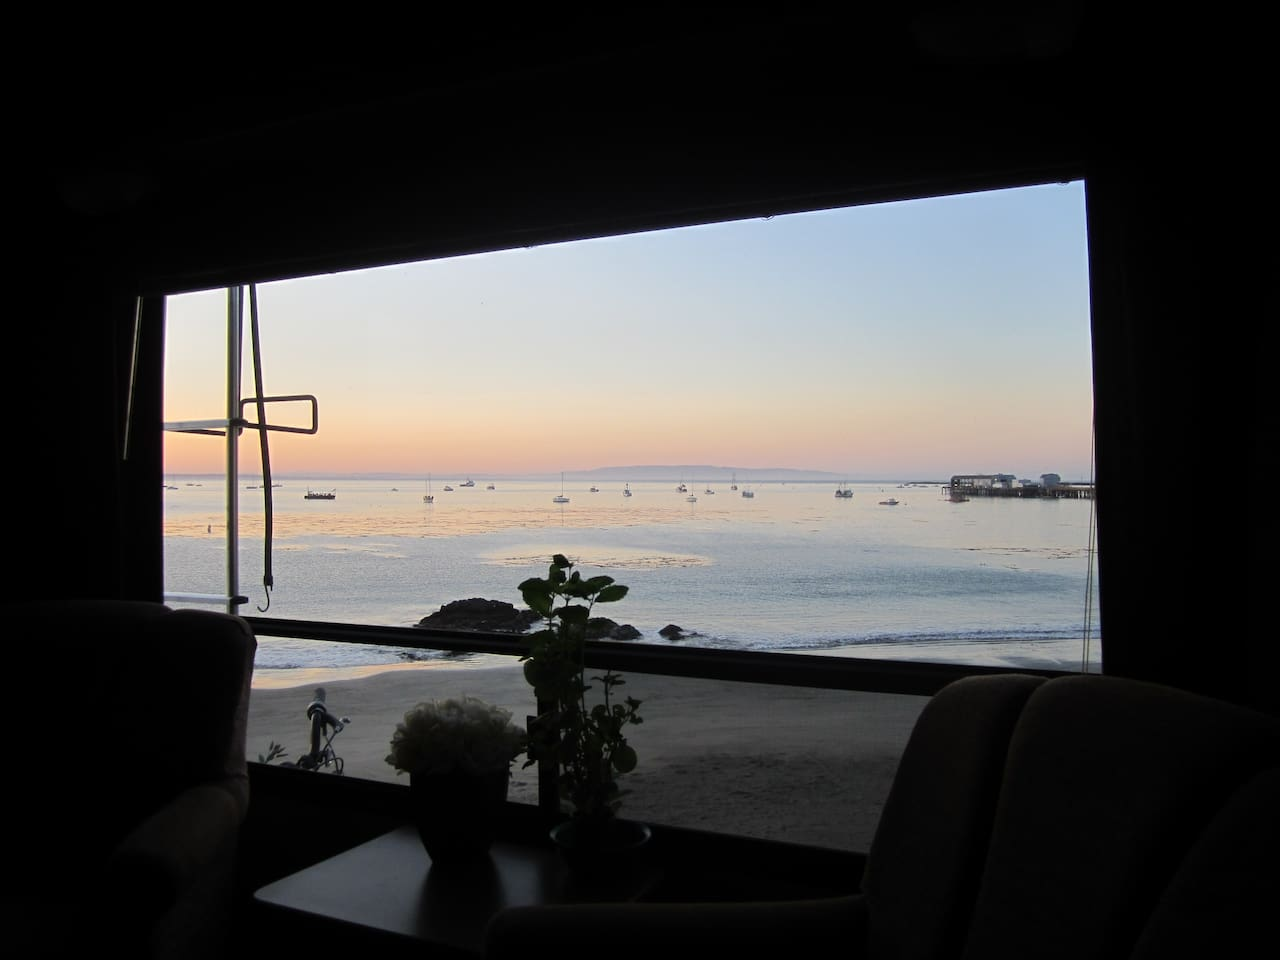 Your sunset view from from the rear bay window. Avila Beach, California